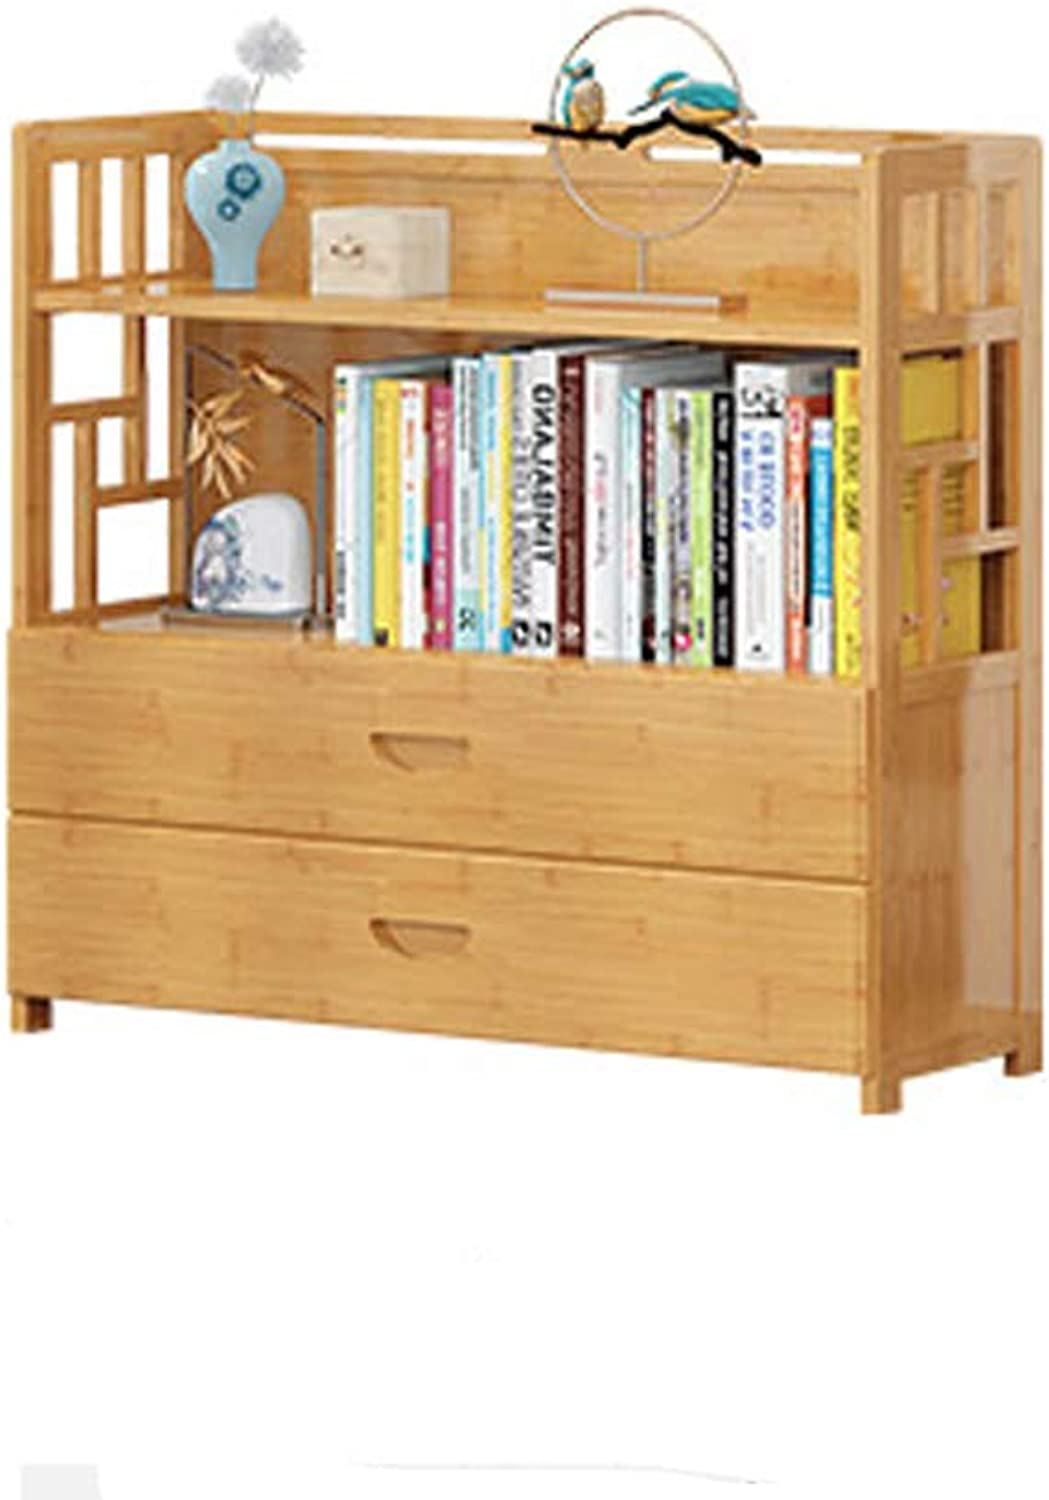 Solid Wood Open Shelf Bookshelf,Display Rack Multifunctional Better Homes and Gardens Furniture Organizer Storage Bookcases-A 50x25x83cm(20x10x33inch)